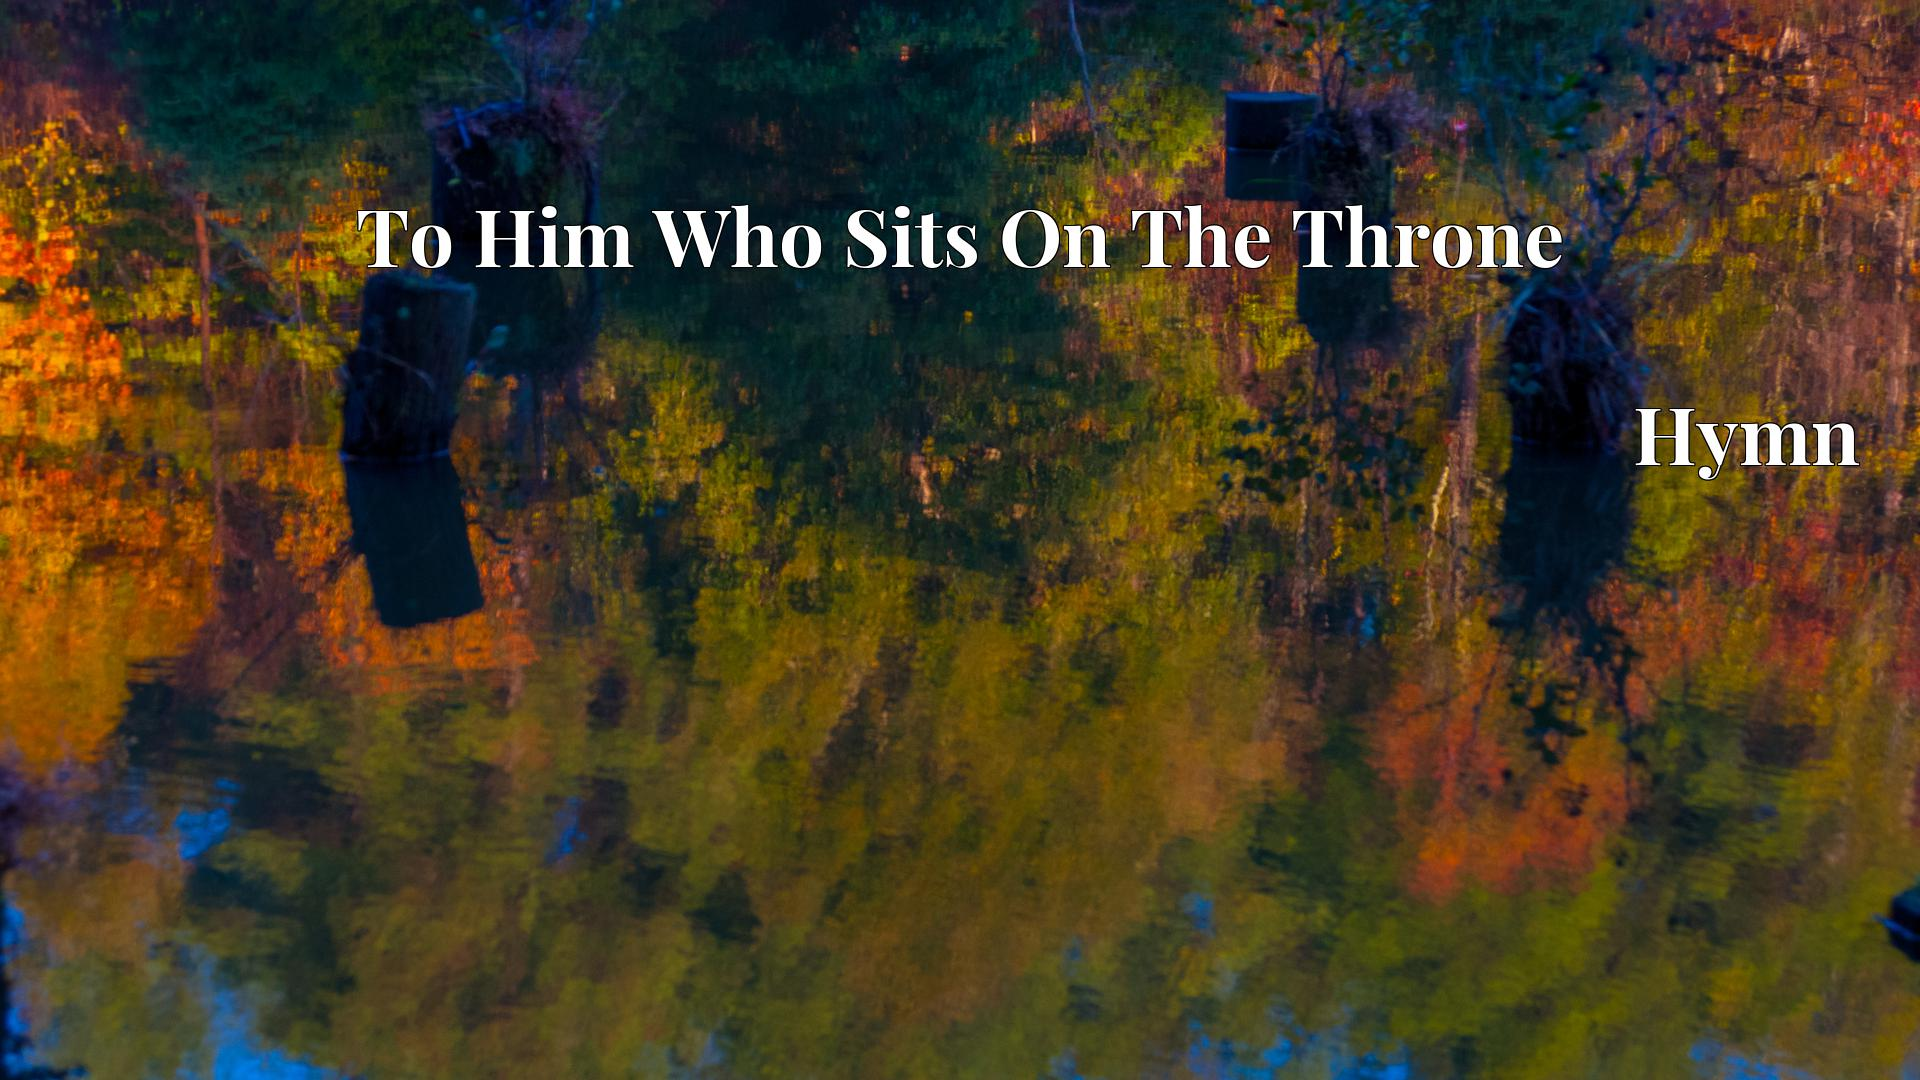 To Him Who Sits On The Throne - Hymn